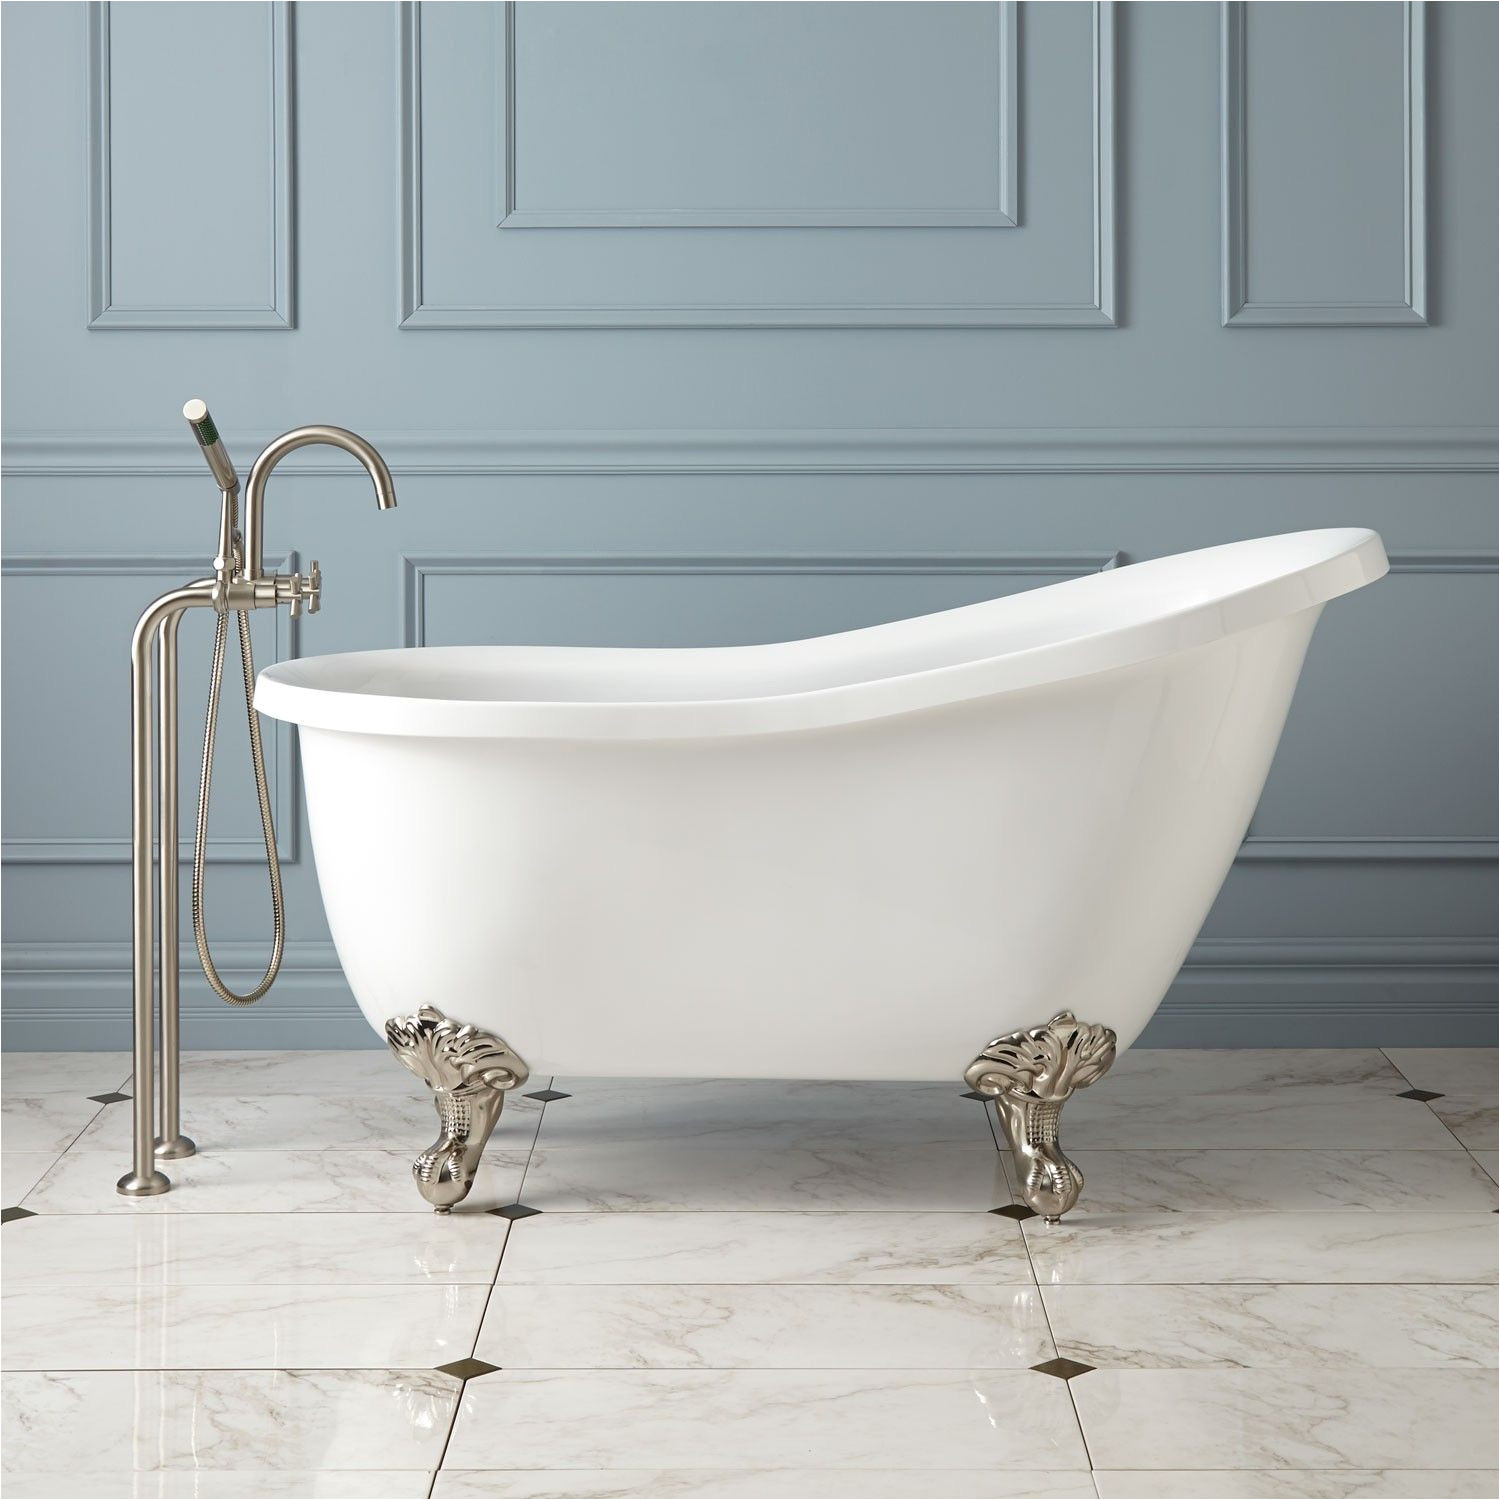 a 54 small scale clawfoot tub for real and it s cheaper than a replacement corner tub would be bathtubs